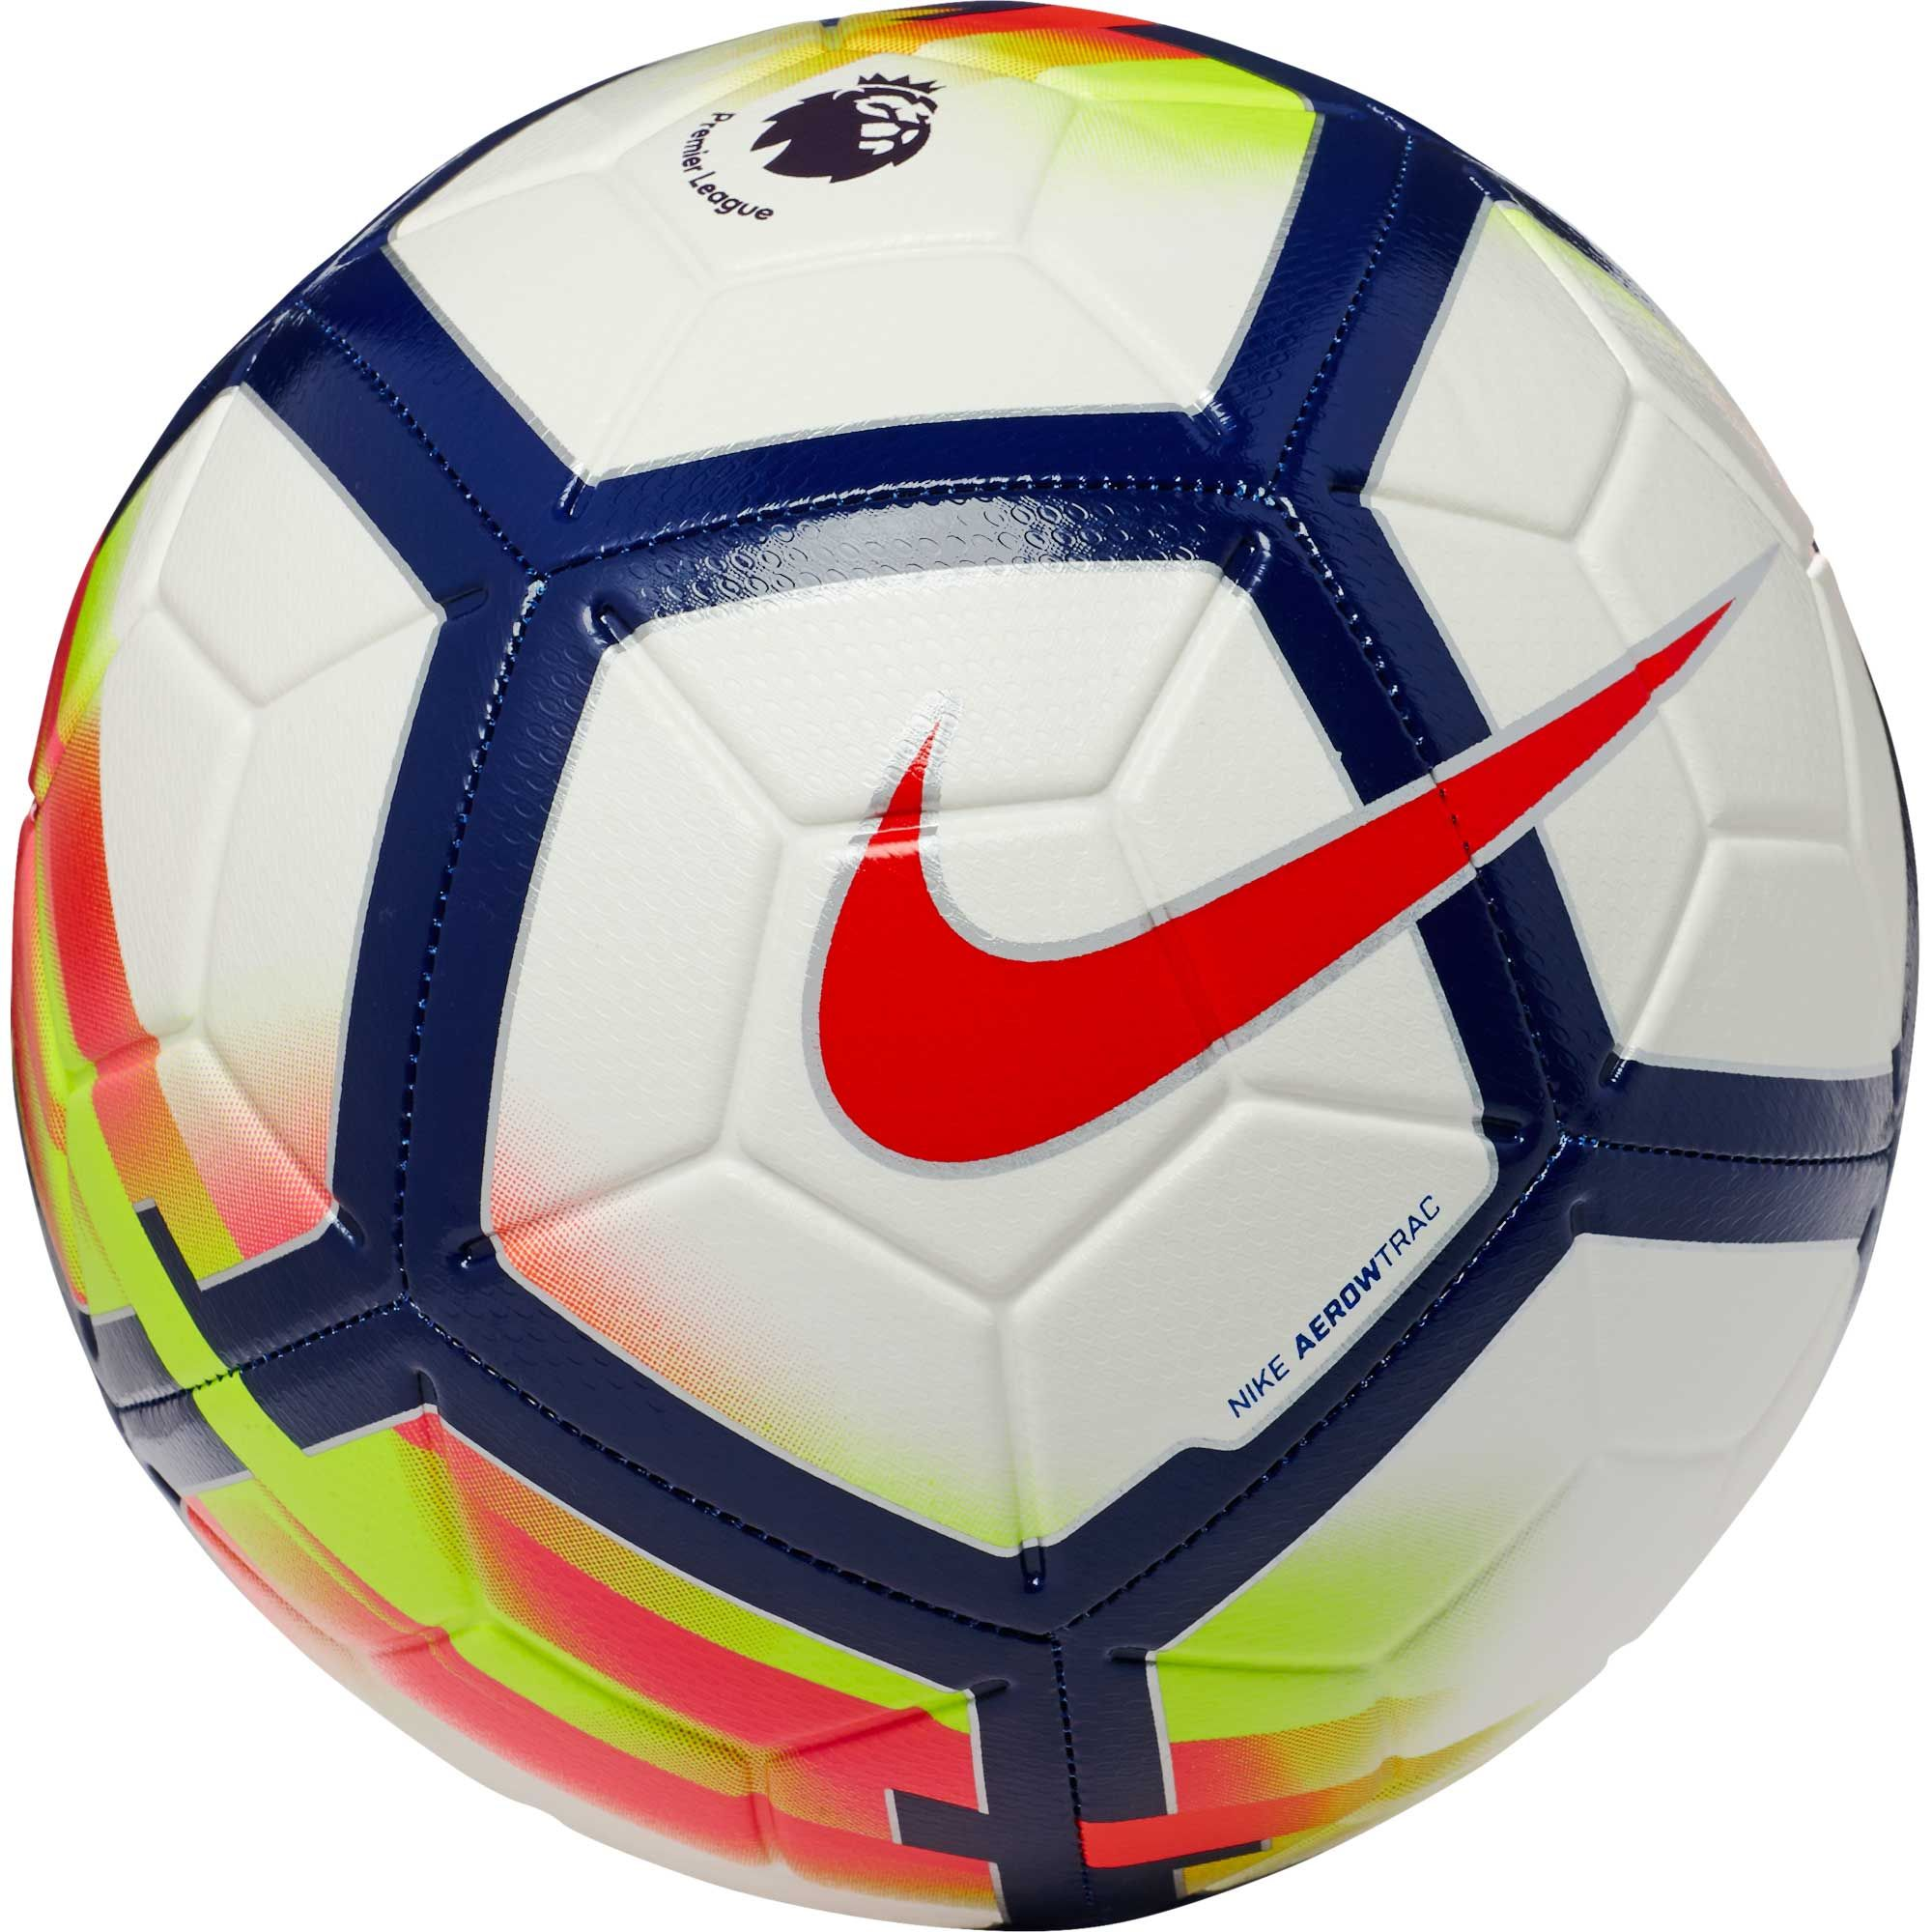 Nike Strike Soccer Ball Premier League White Crimson Nike Soccer Ball Soccer Ball Premier League Soccer